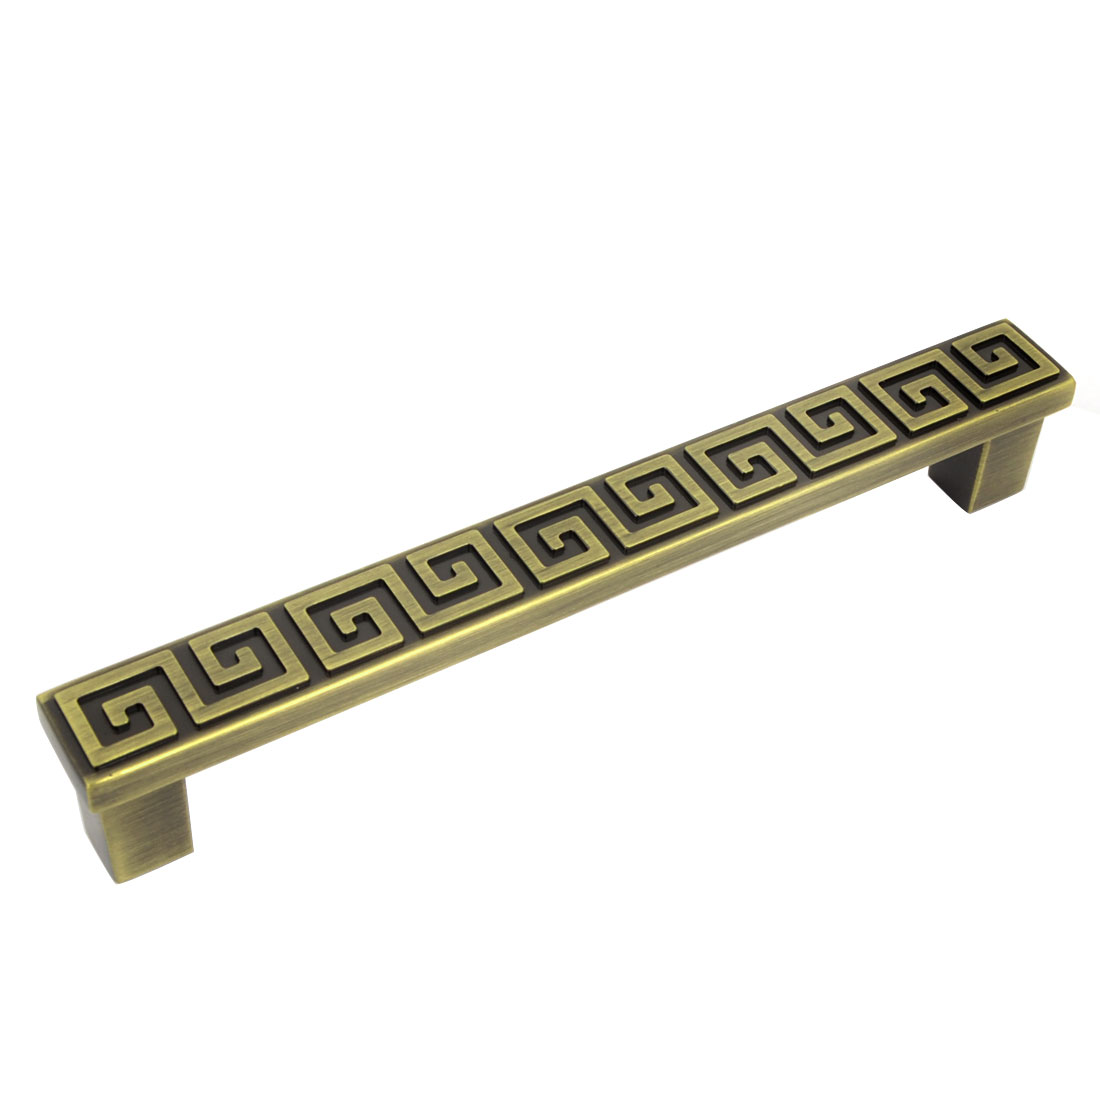 Retro Style Bronze Tone Metal Cabinet Drawer Door Pull Handle 5.5""